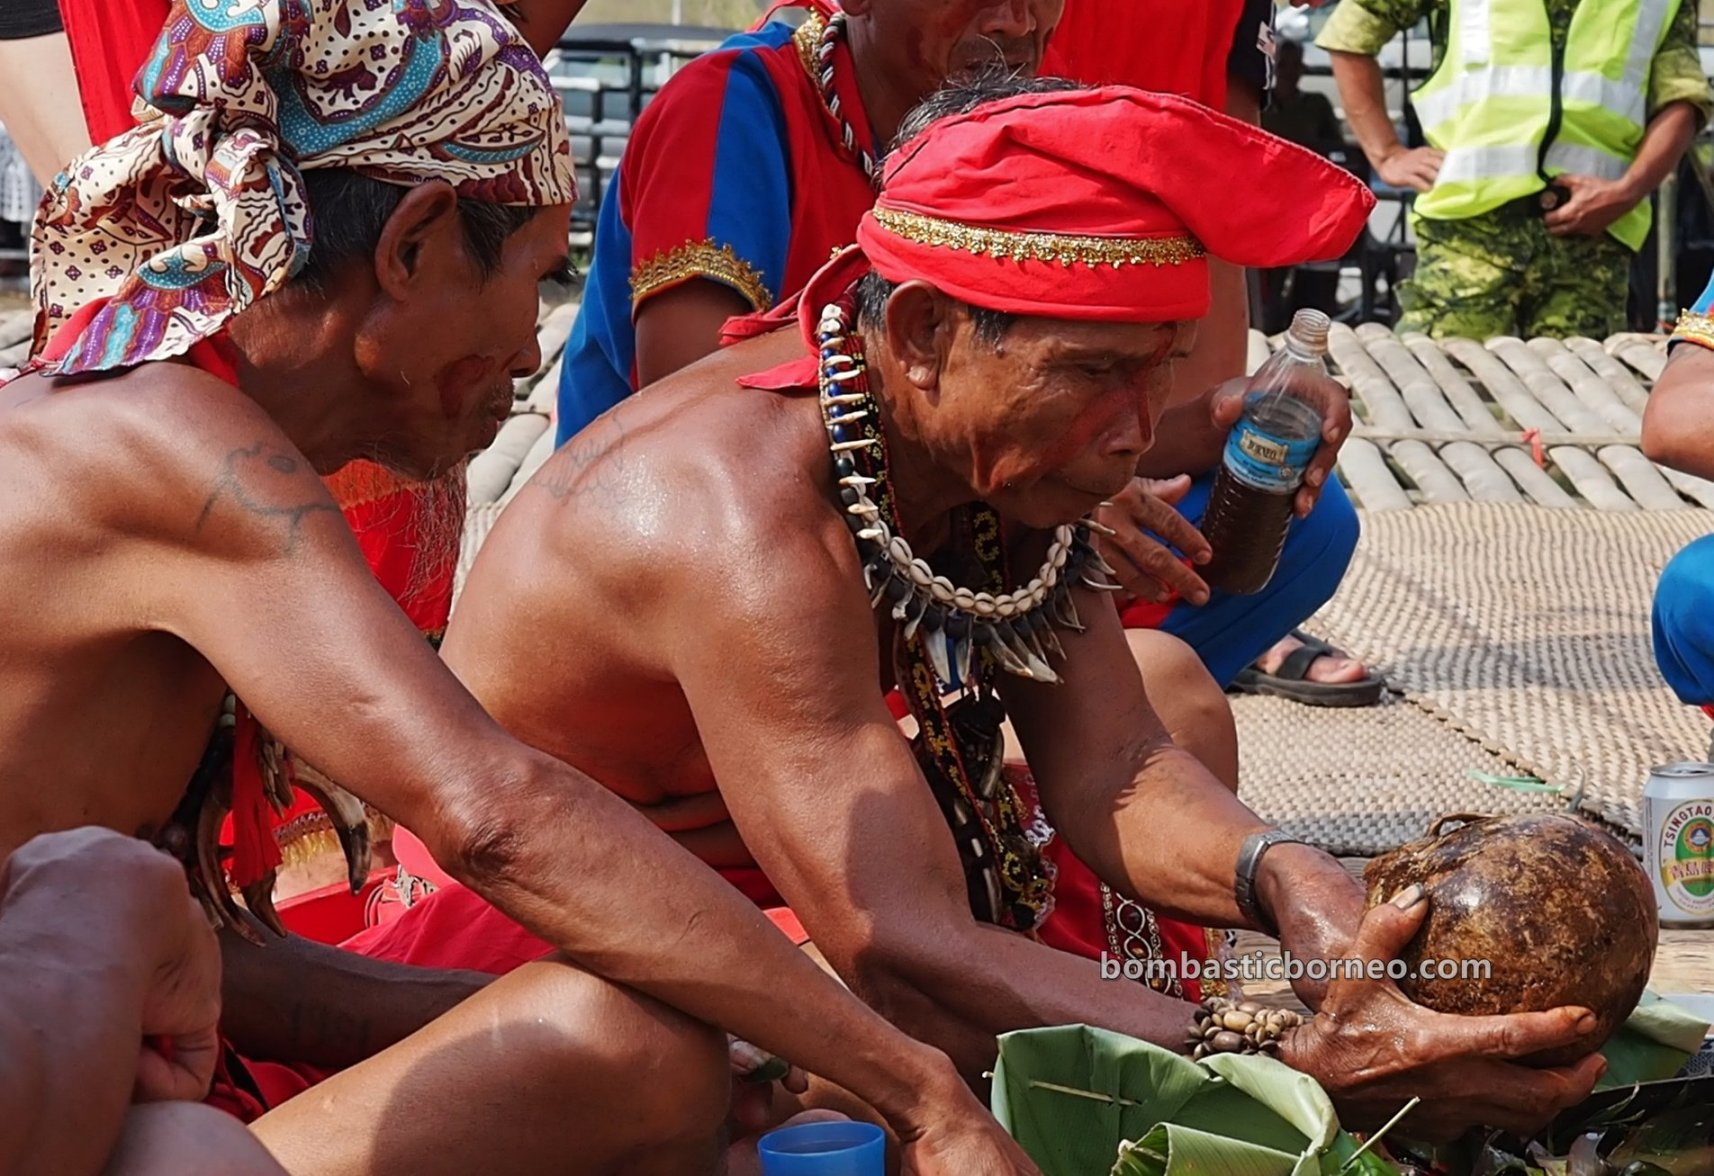 Pesta Nyarok Biya, Bengoh Dam Resettlement Scheme, adat, authentic, traditional, Ceremony, ritual, event, dayak bidayuh, tribal, Borneo, Malaysia, cross border, 探索婆罗洲游踪, 砂拉越达雅丰收节日, 比达友族文化,